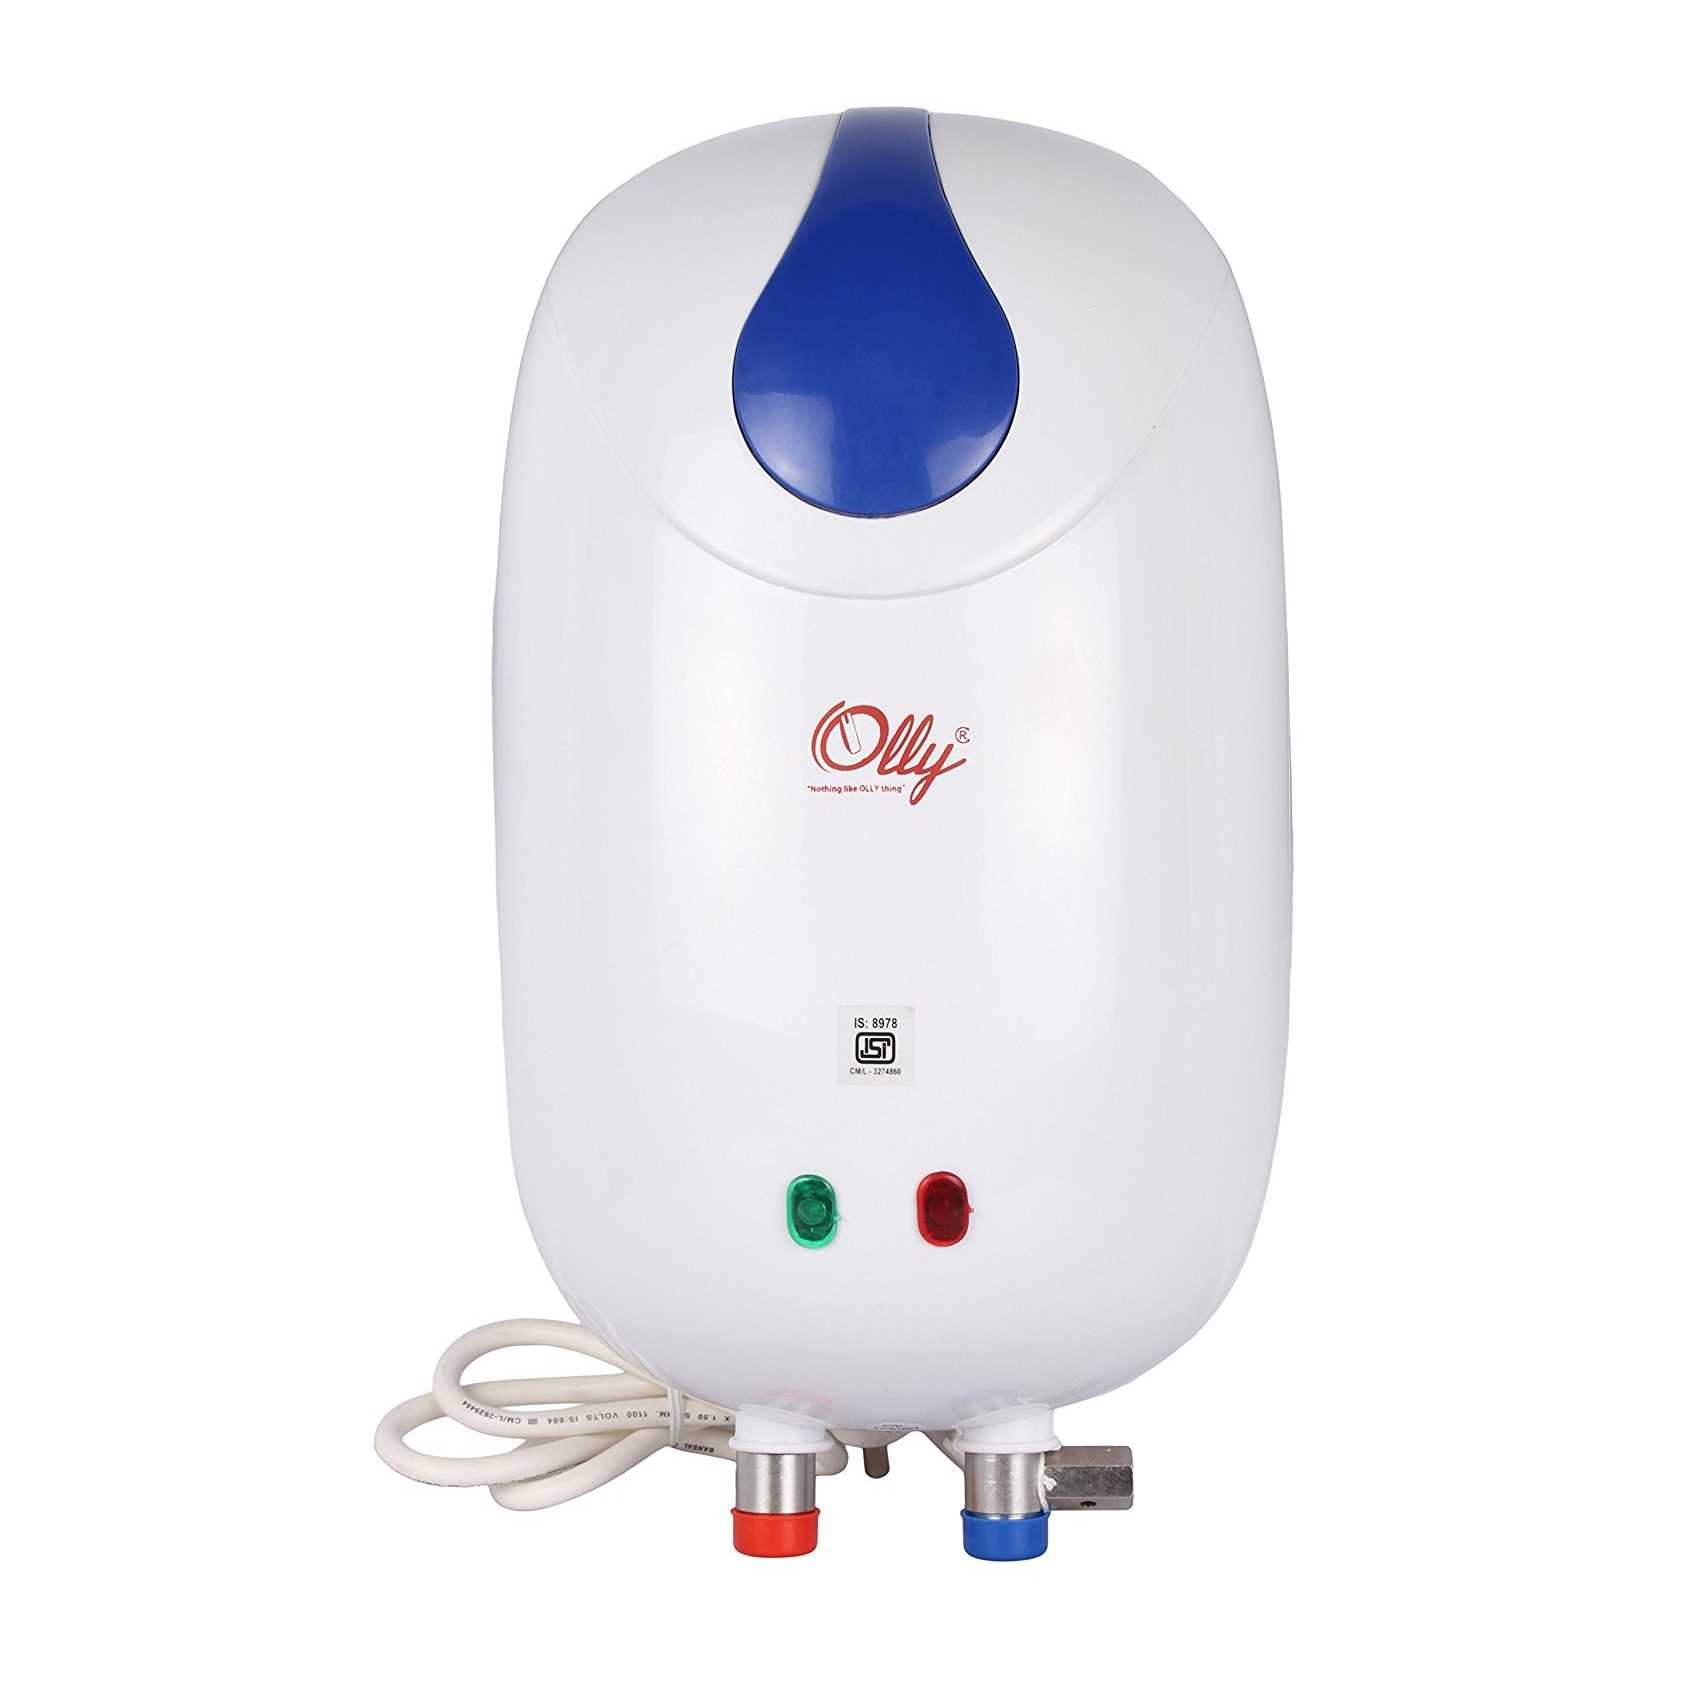 Olly Diamond EGB-01 3 Litre Storage Water Heater